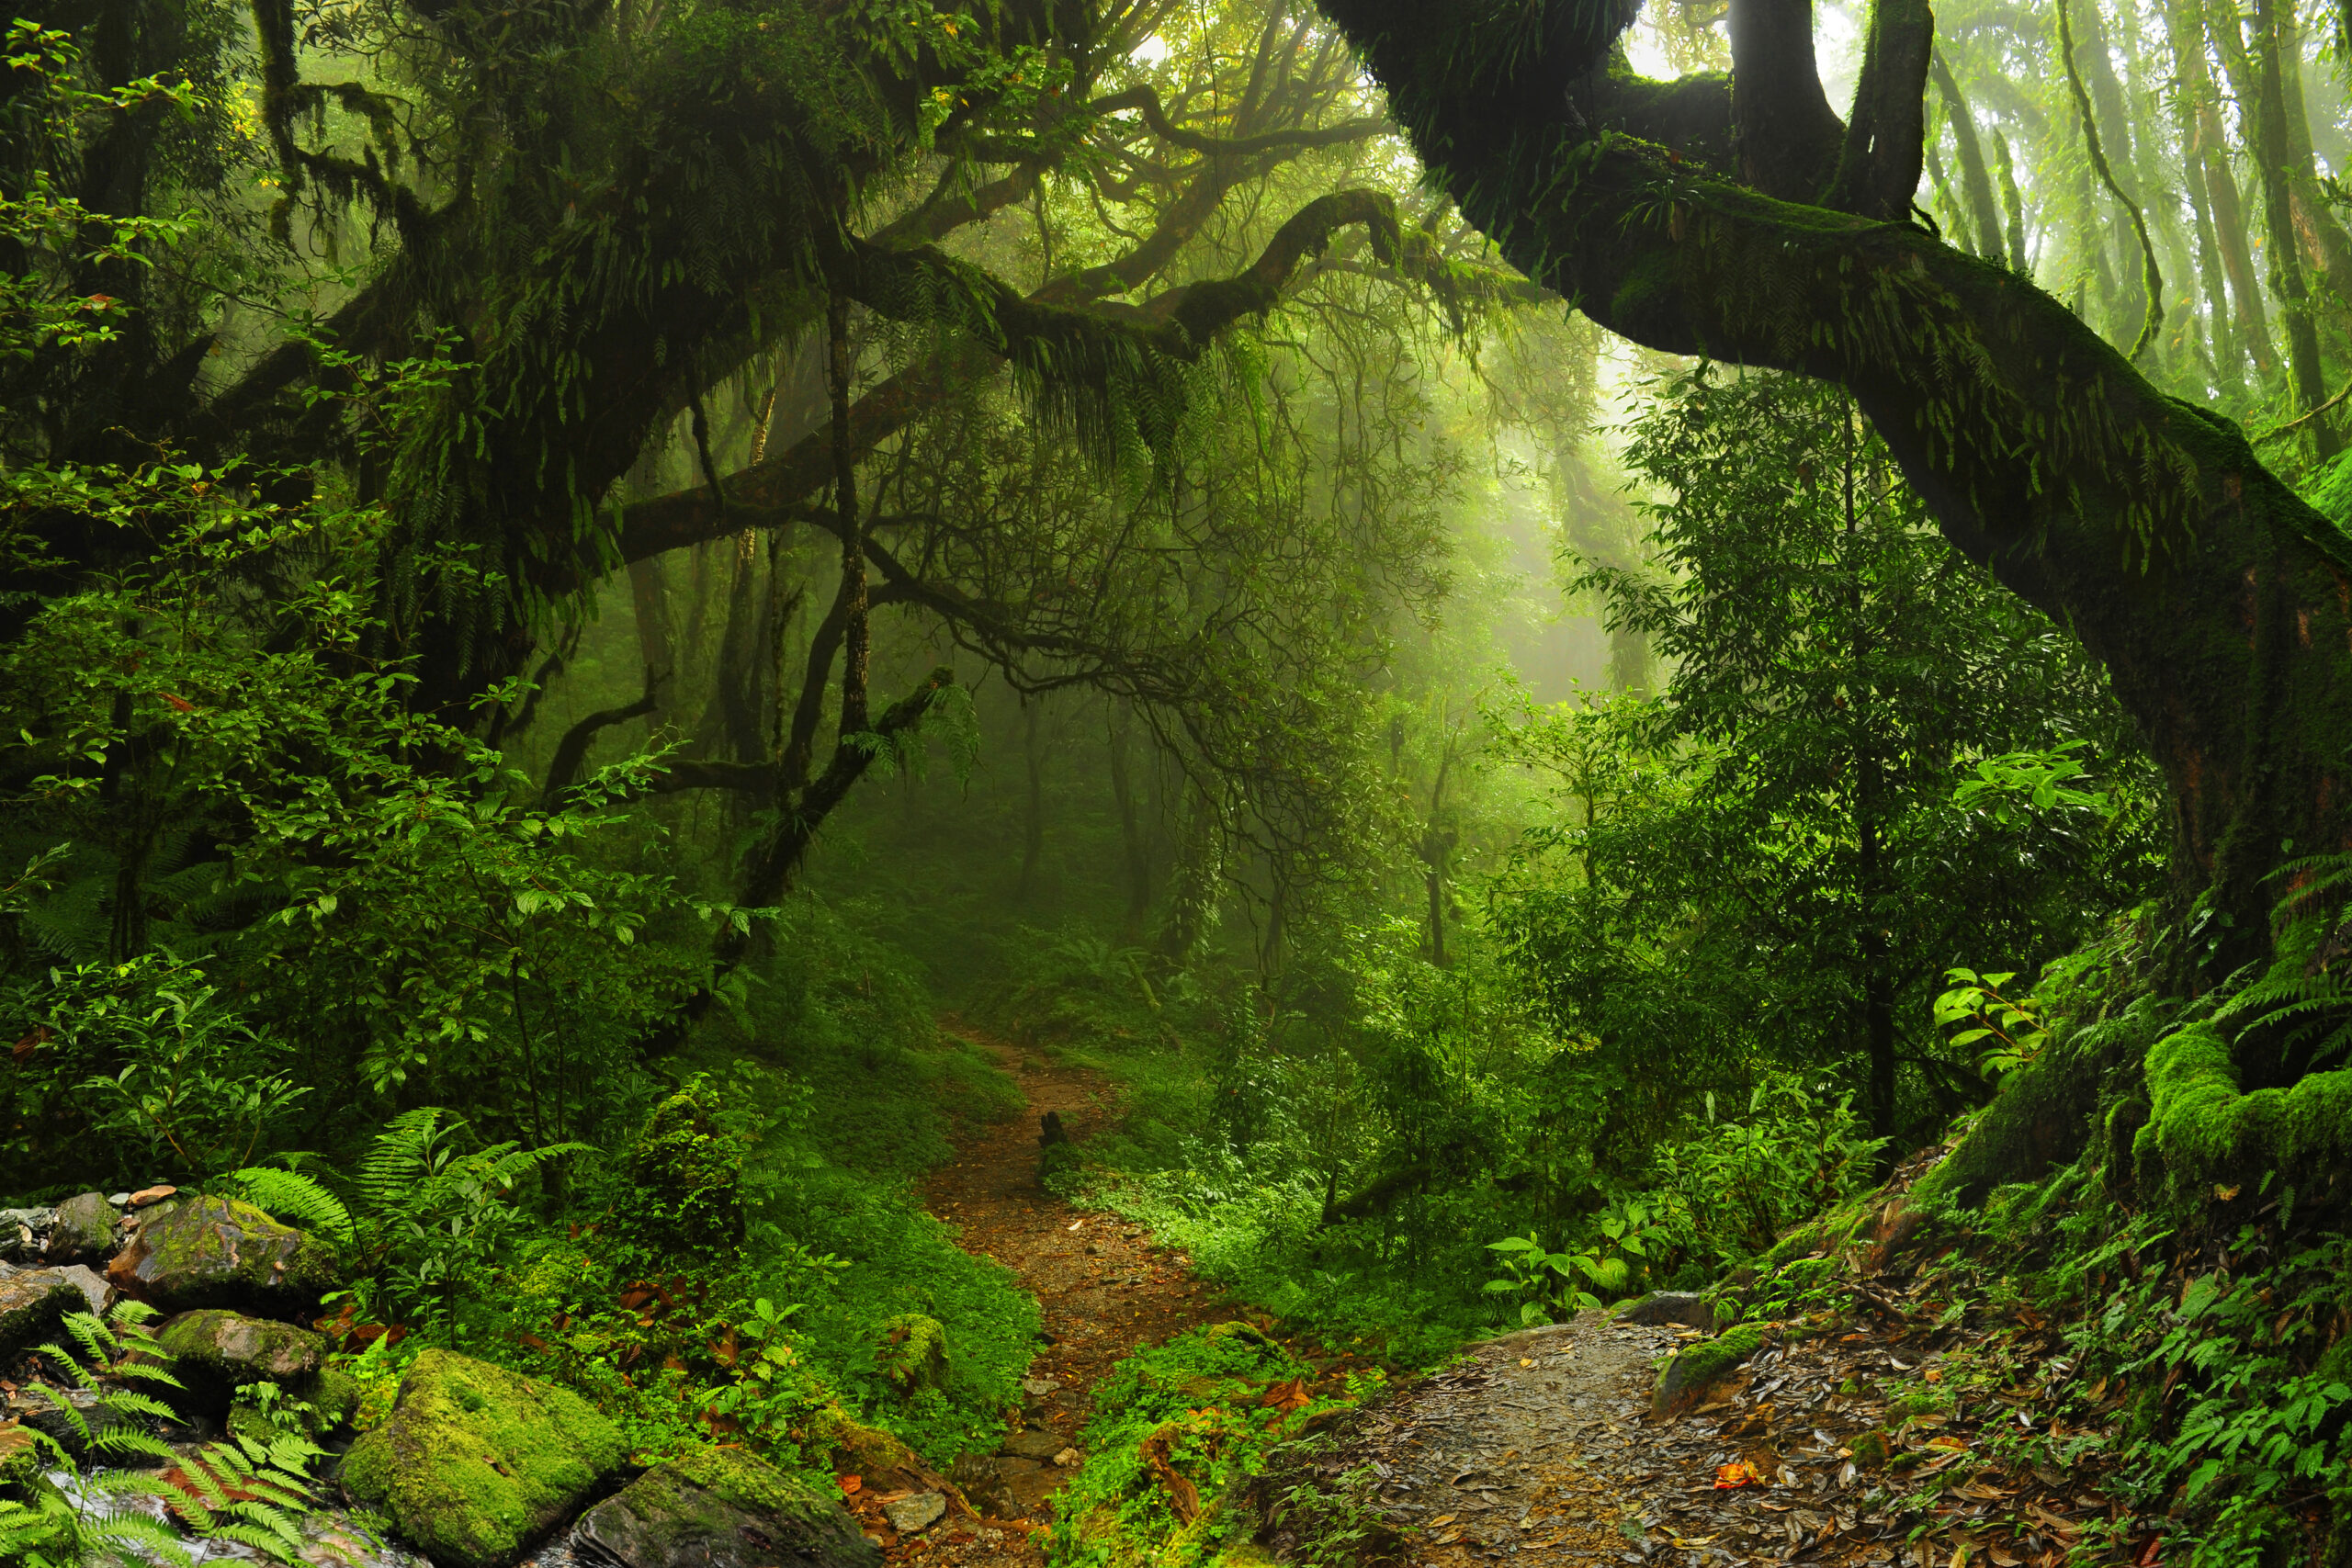 AXA earmarks €1.5bn to protect forest ecosystems